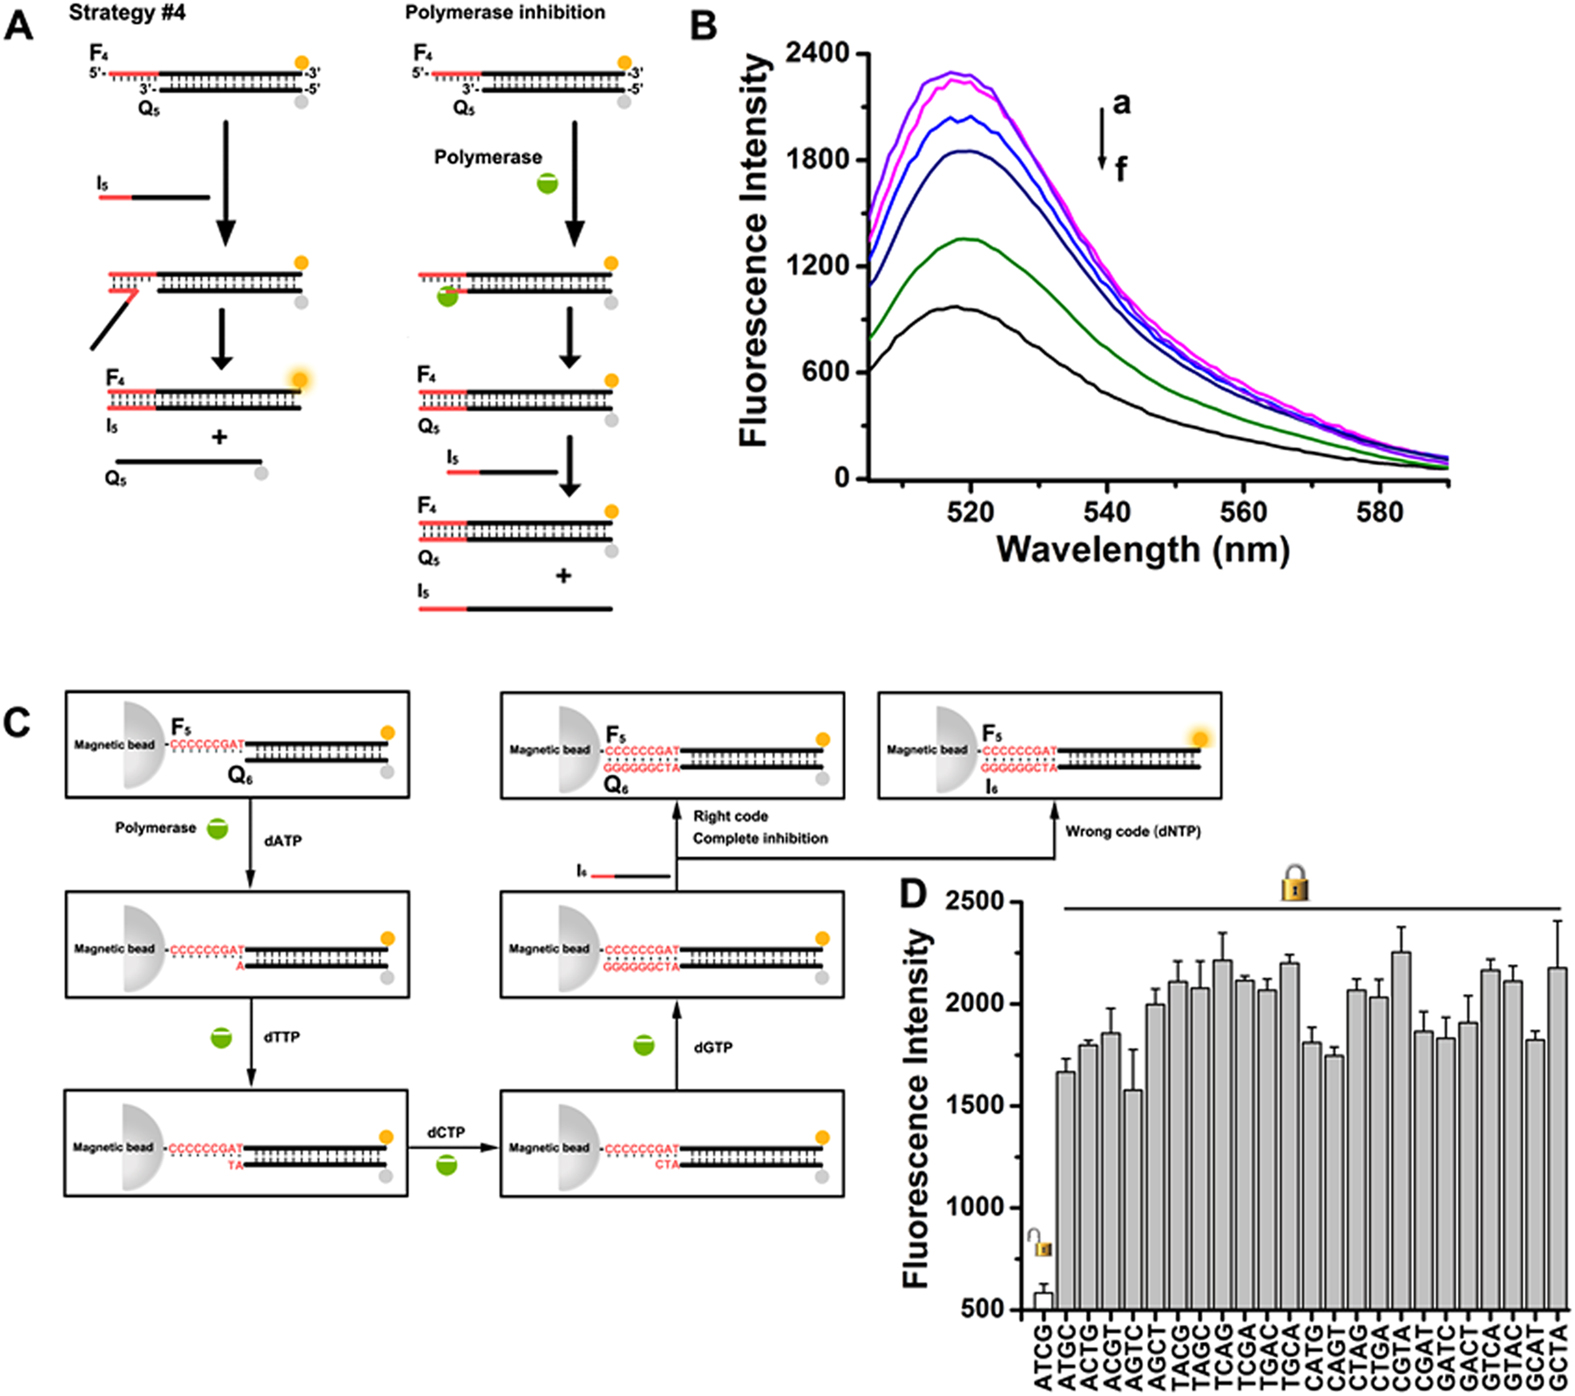 Flexible Regulation Of Dna Displacement Reaction Through Nucleic Logic Gates And Cascaded Circuits Dynamic Nanotechnology Using B Fluorescence Spectra Changes Observed Upon Treatment The Sensing Module With Variable Concentrations Polymerase A 0